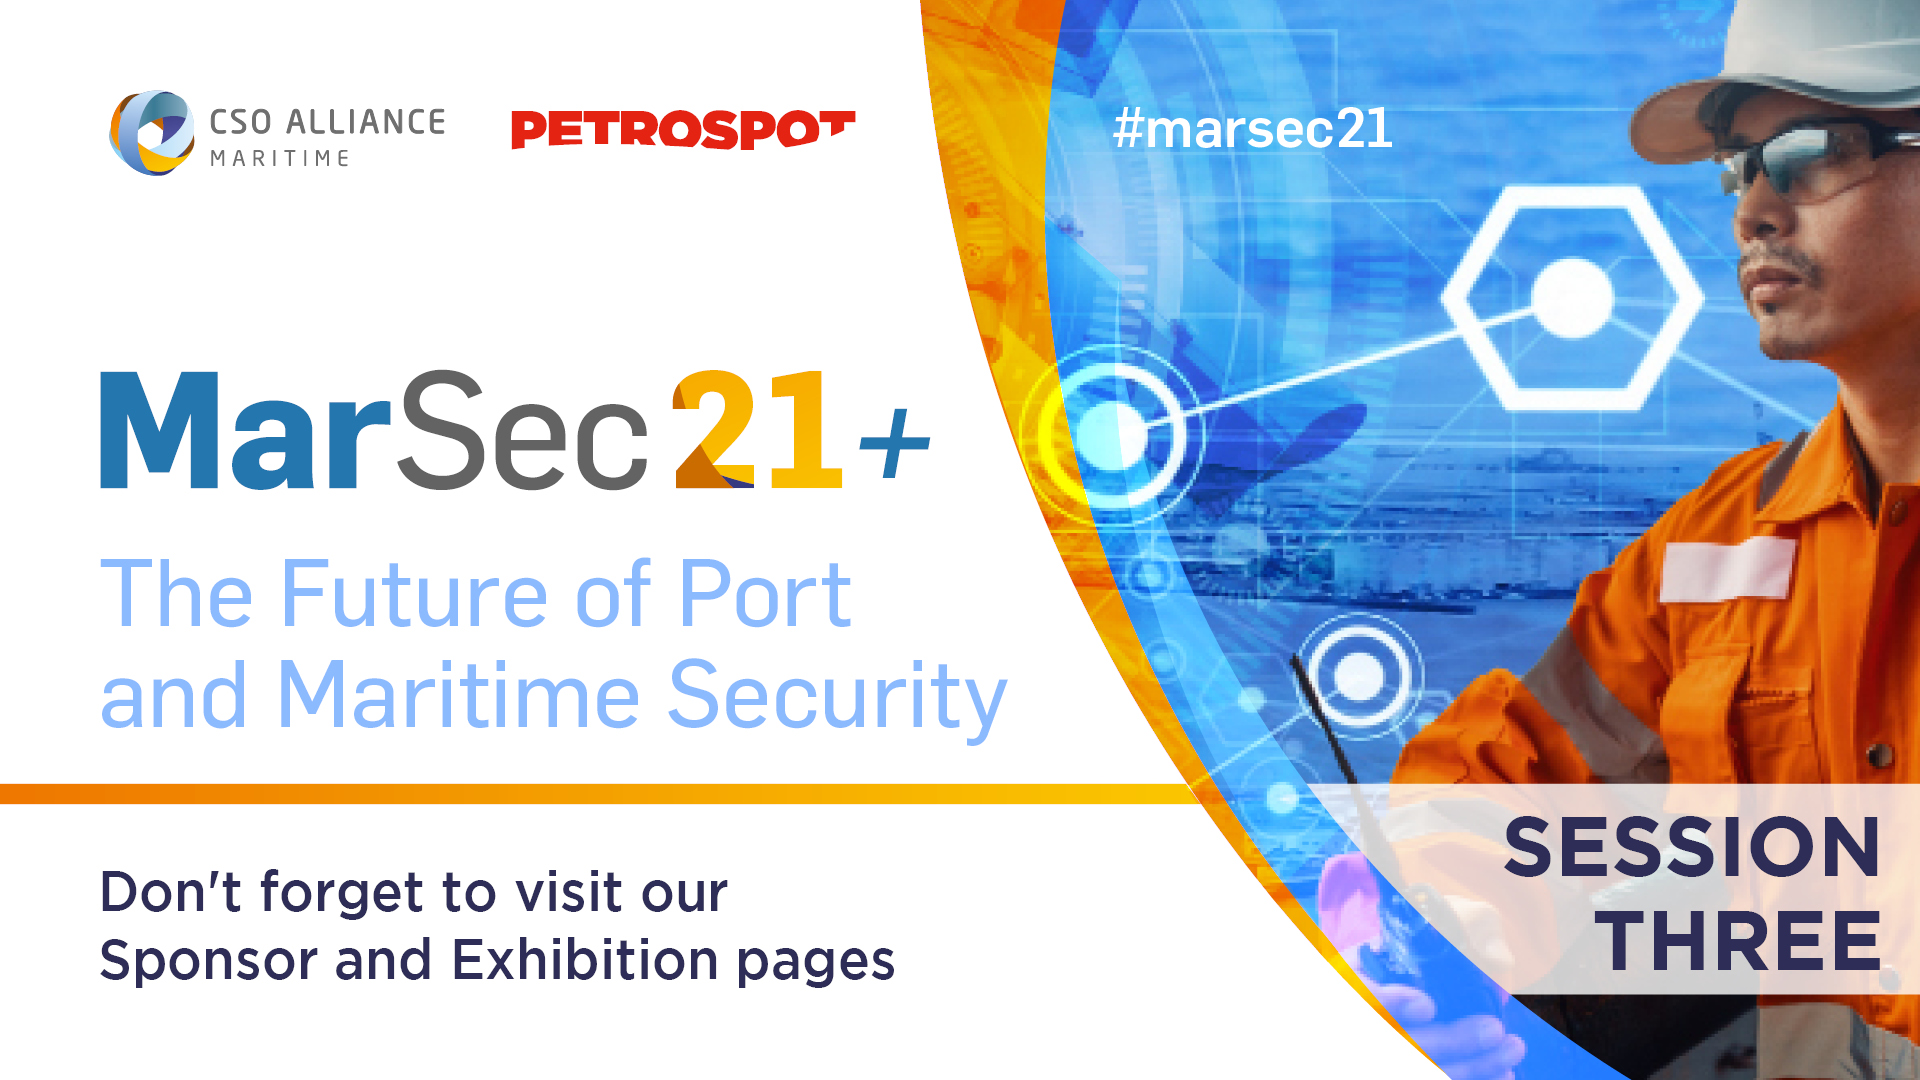 MarSec 21+ Session 3: Incident Reporting - breaking down barriers that prevents the free flow of security incident information